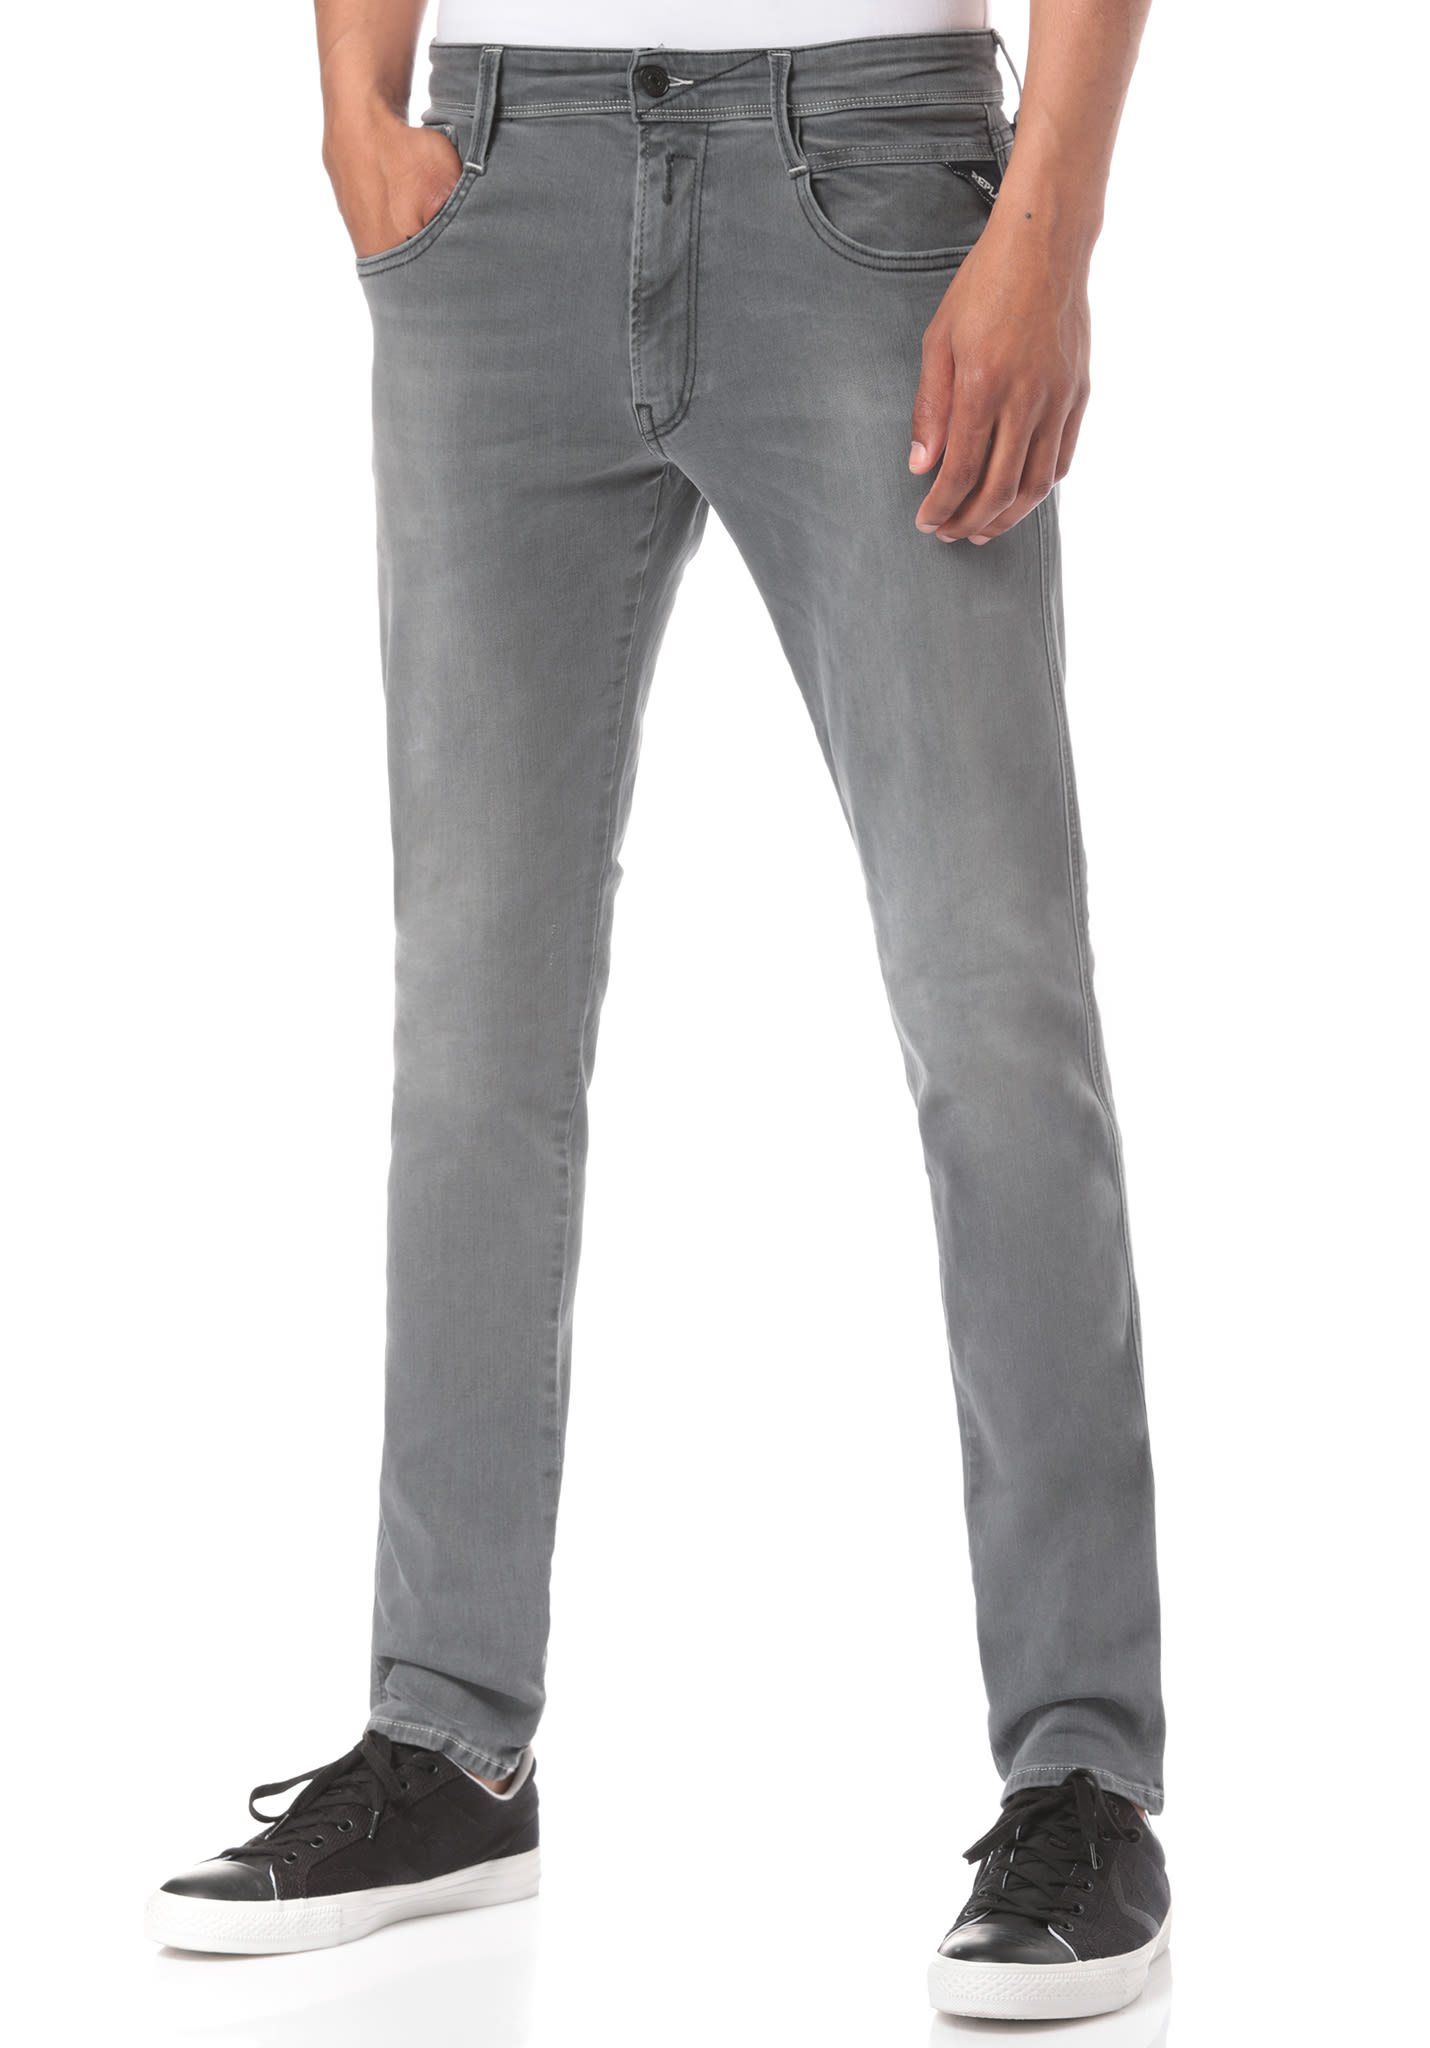 fd8115bbb07ea3 Replay Anbass - Denim Jeans for Men - Grey - Planet Sports